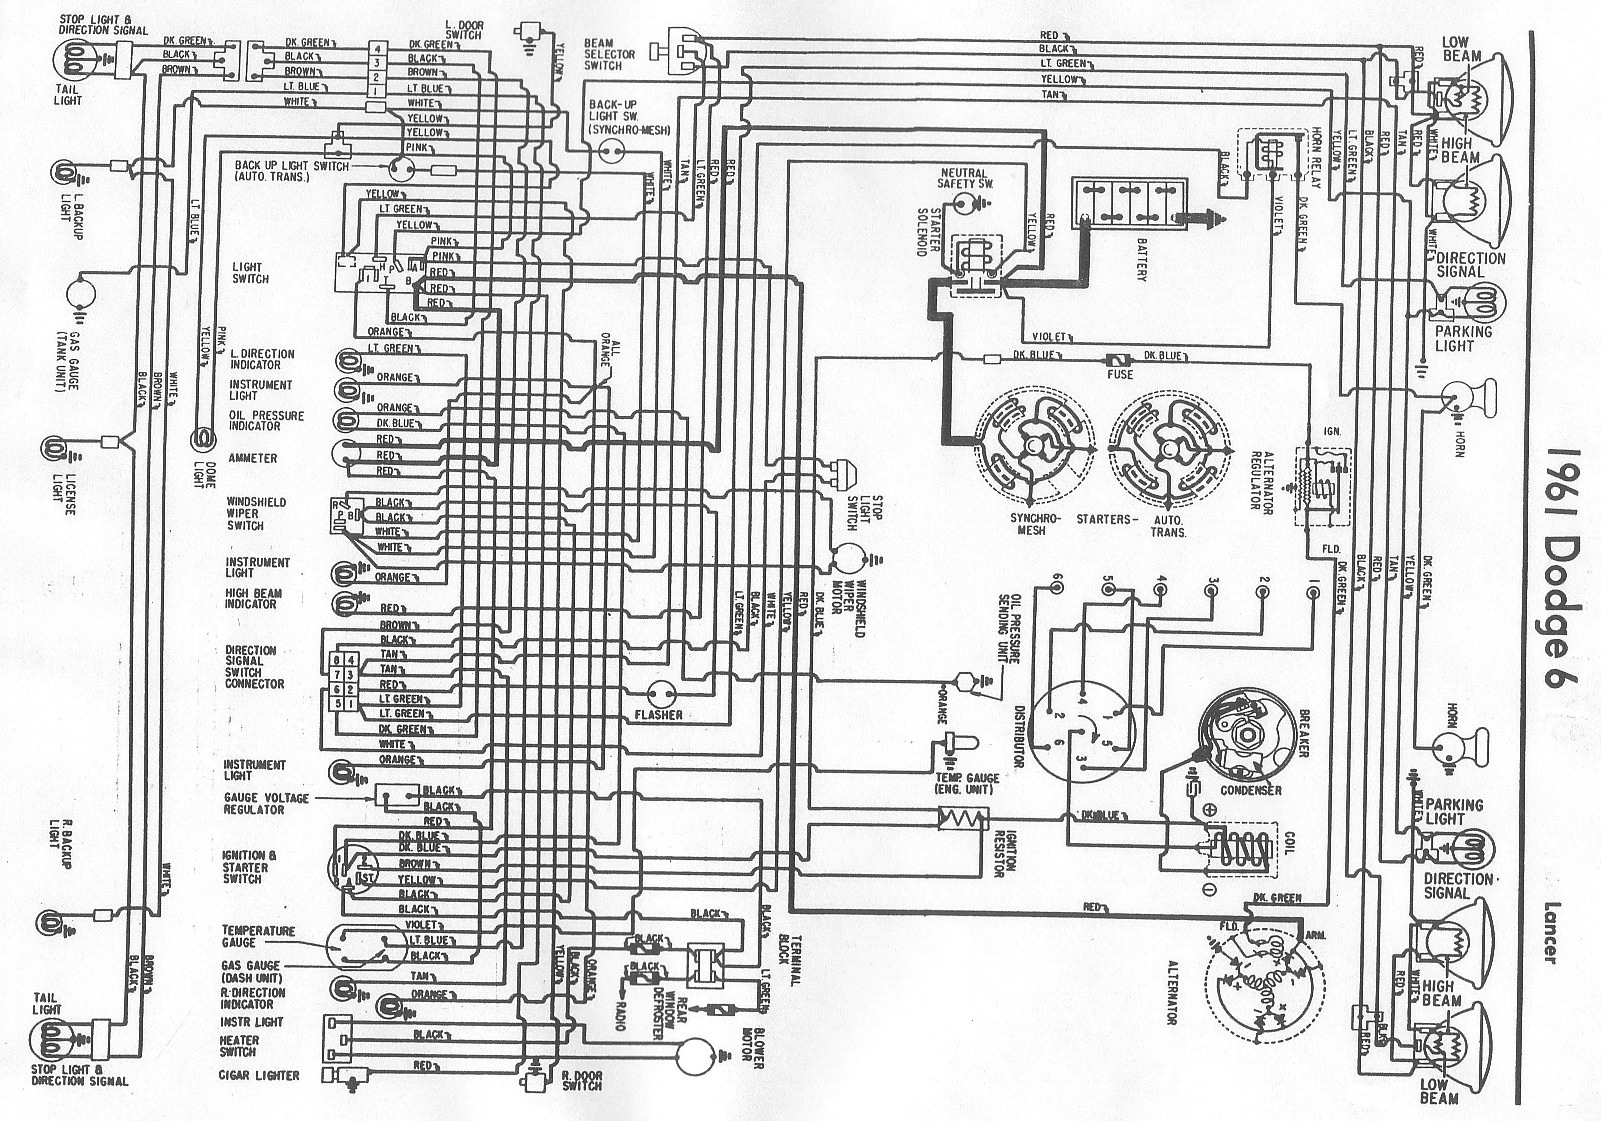 Integra Gauge Cer Wiring Diagram Page 4 And. 1995 Volvo 940 Ac Wiring Diagram 240 Radio 1990 Acura Integra Fuel. Acura. 1993 Acura Integra Wiring Problems At Scoala.co